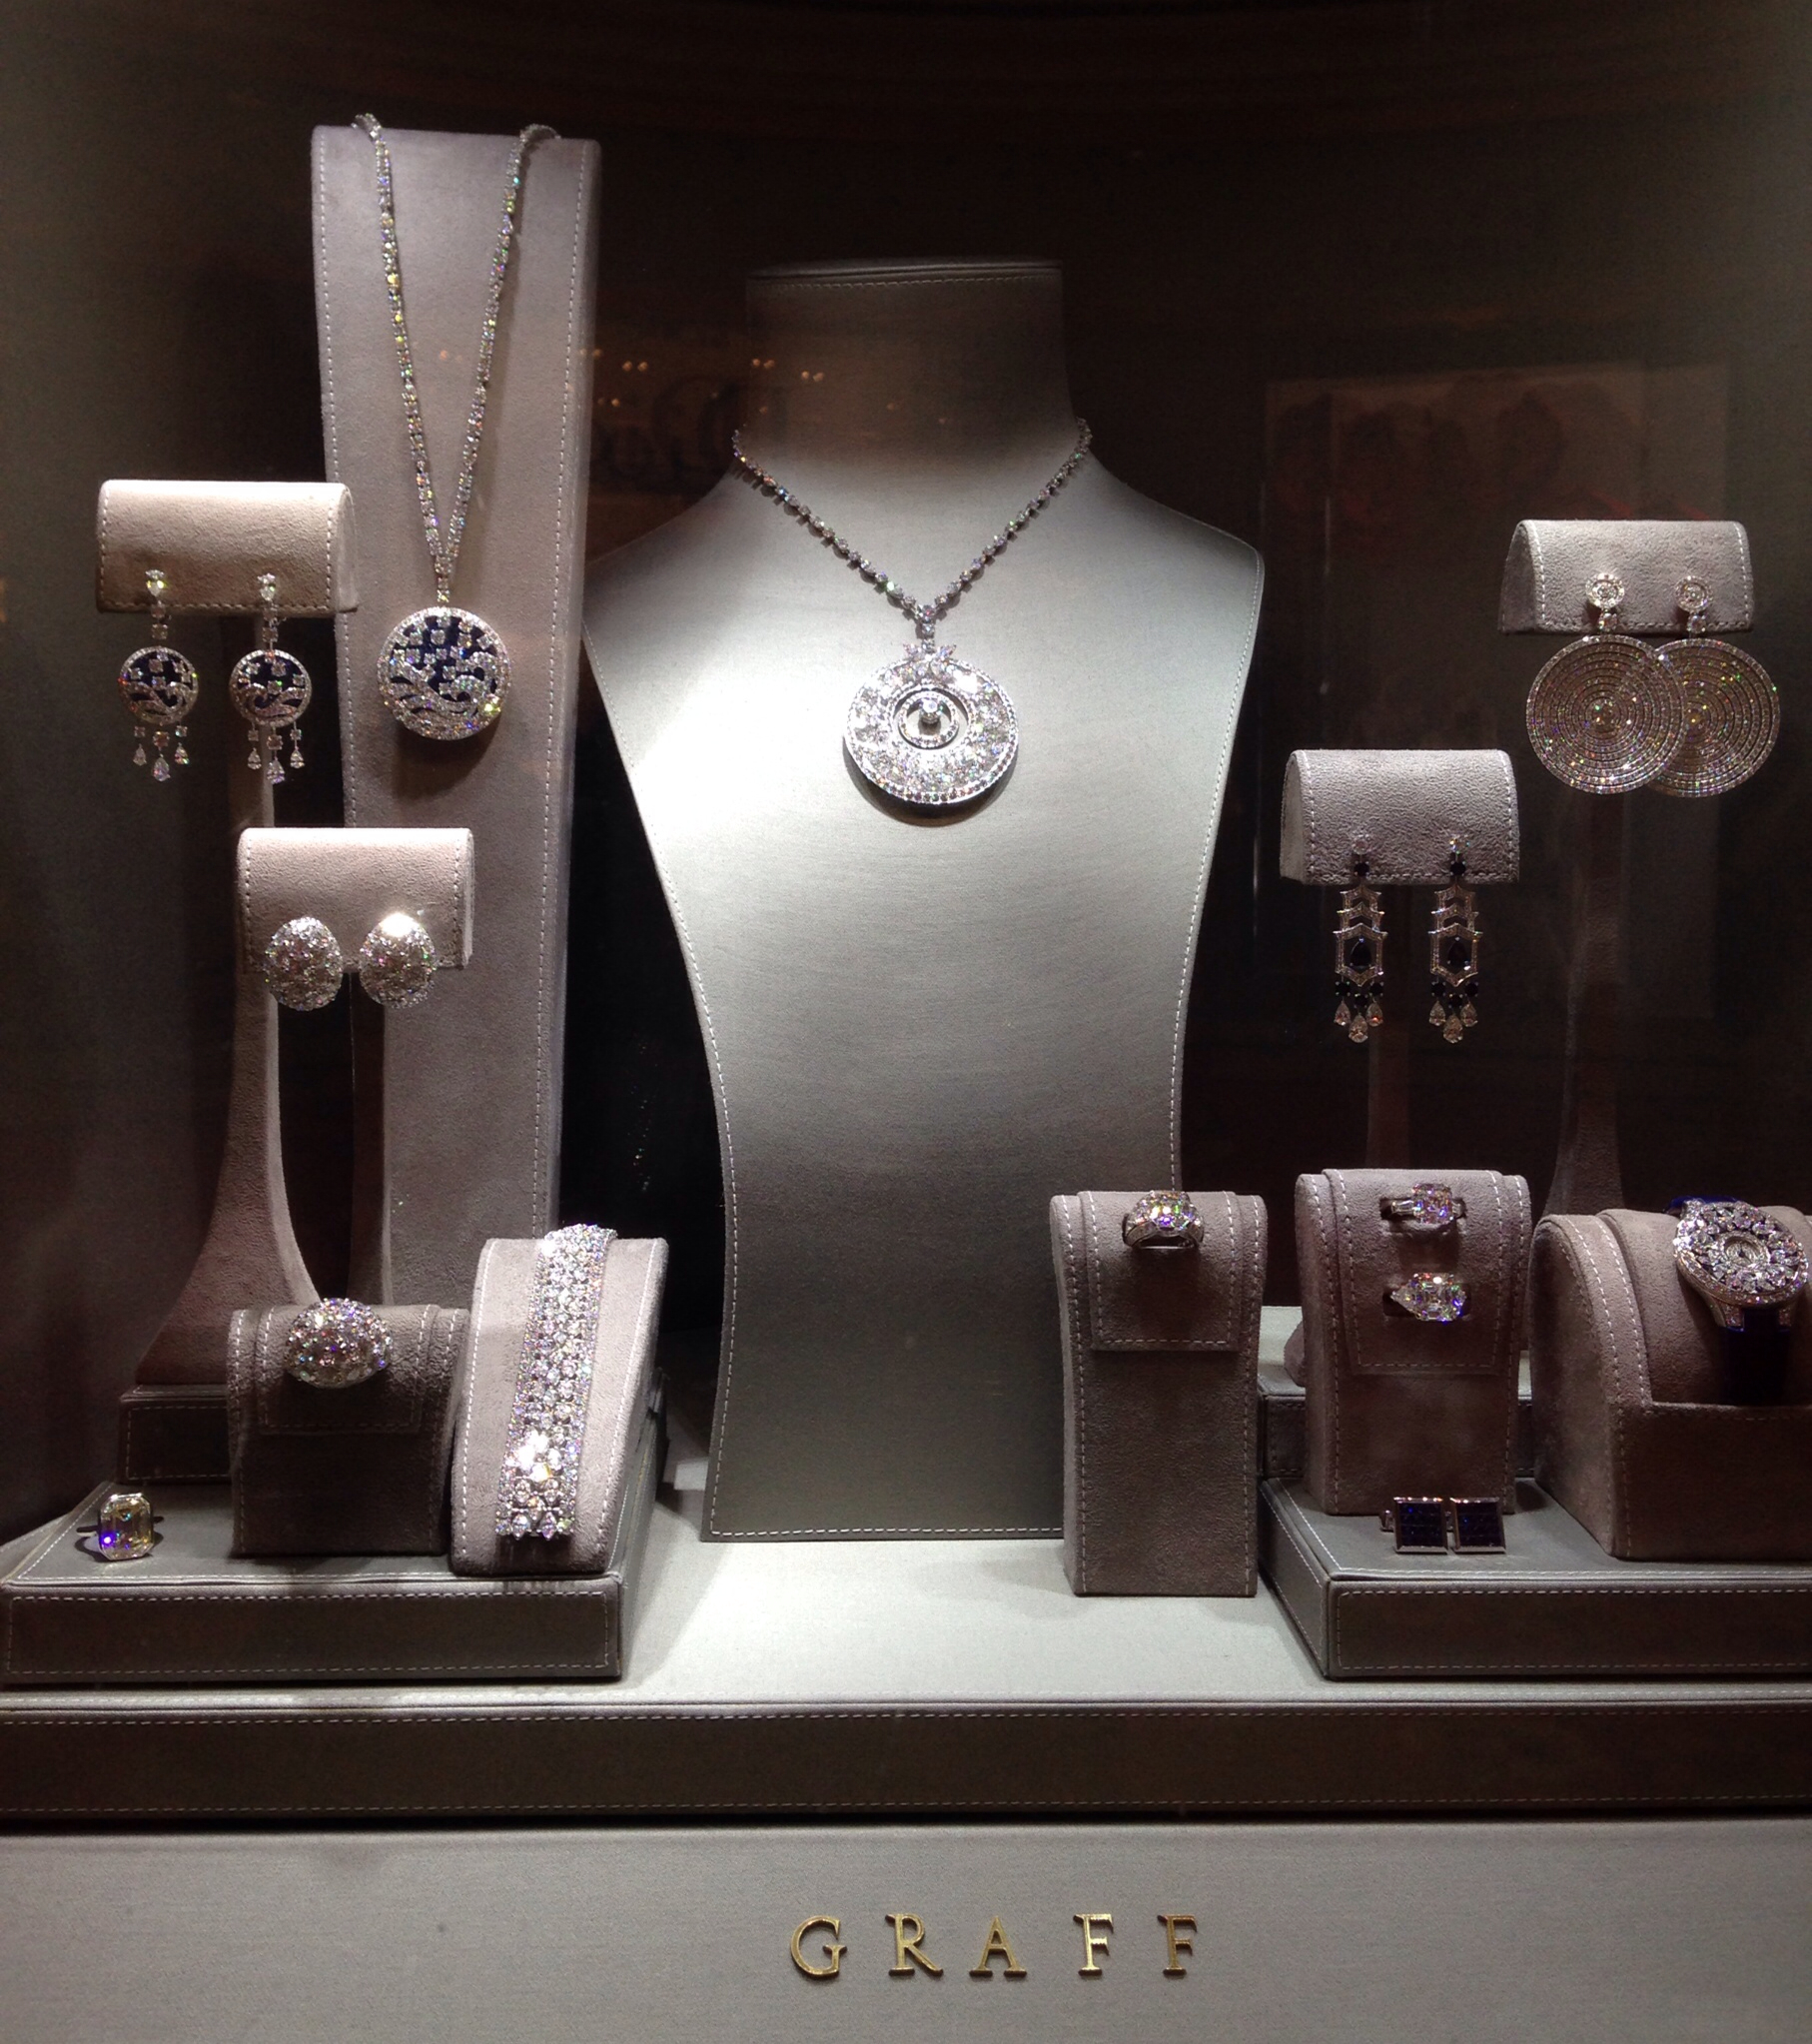 Stands and visual merchandising ideas from the window display of a jewelry store, grey set for diamond jewelry display.